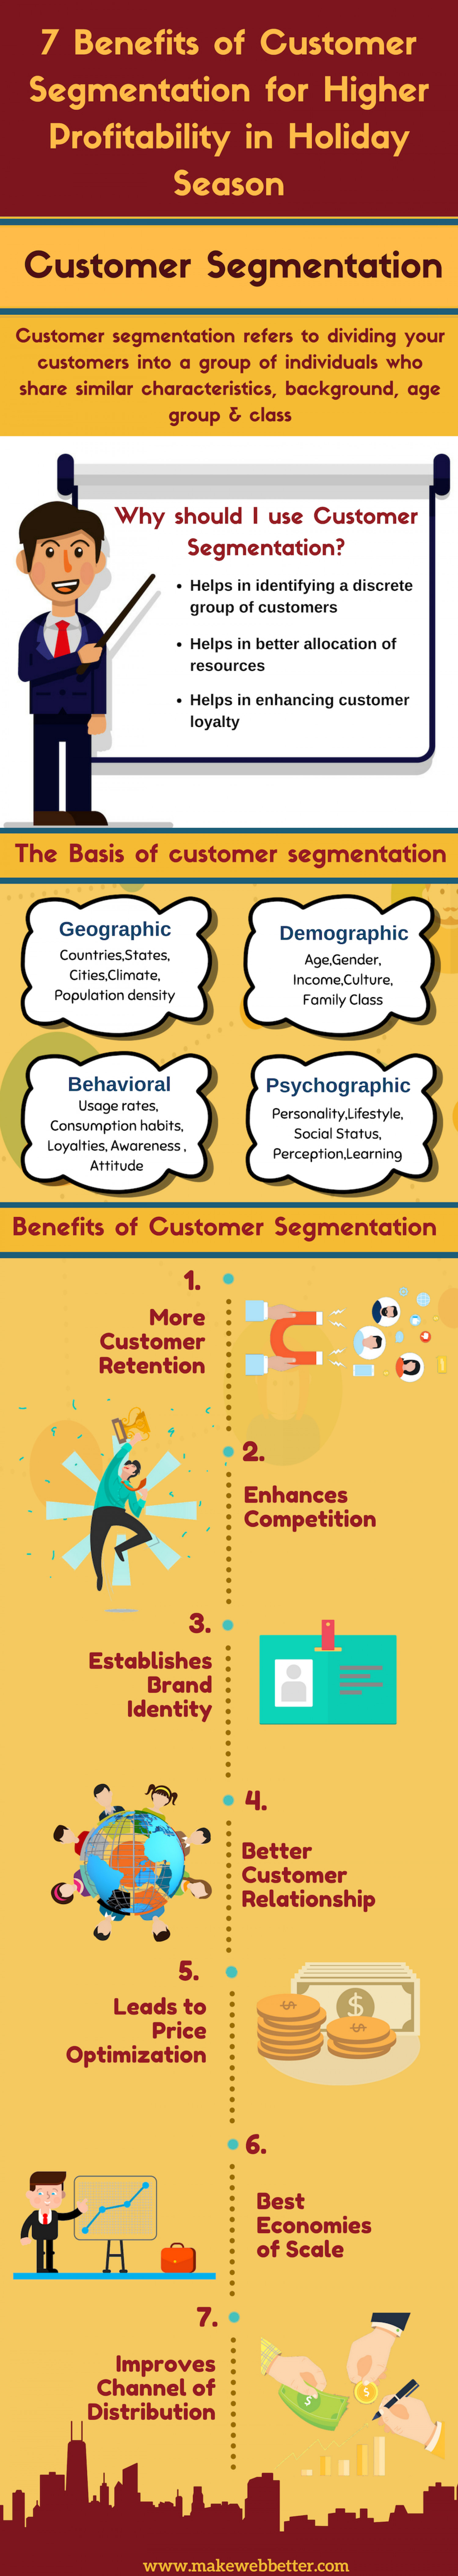 Benefits of Customer Segmentation for Higher Profitablity in Holiday Season  Infographic